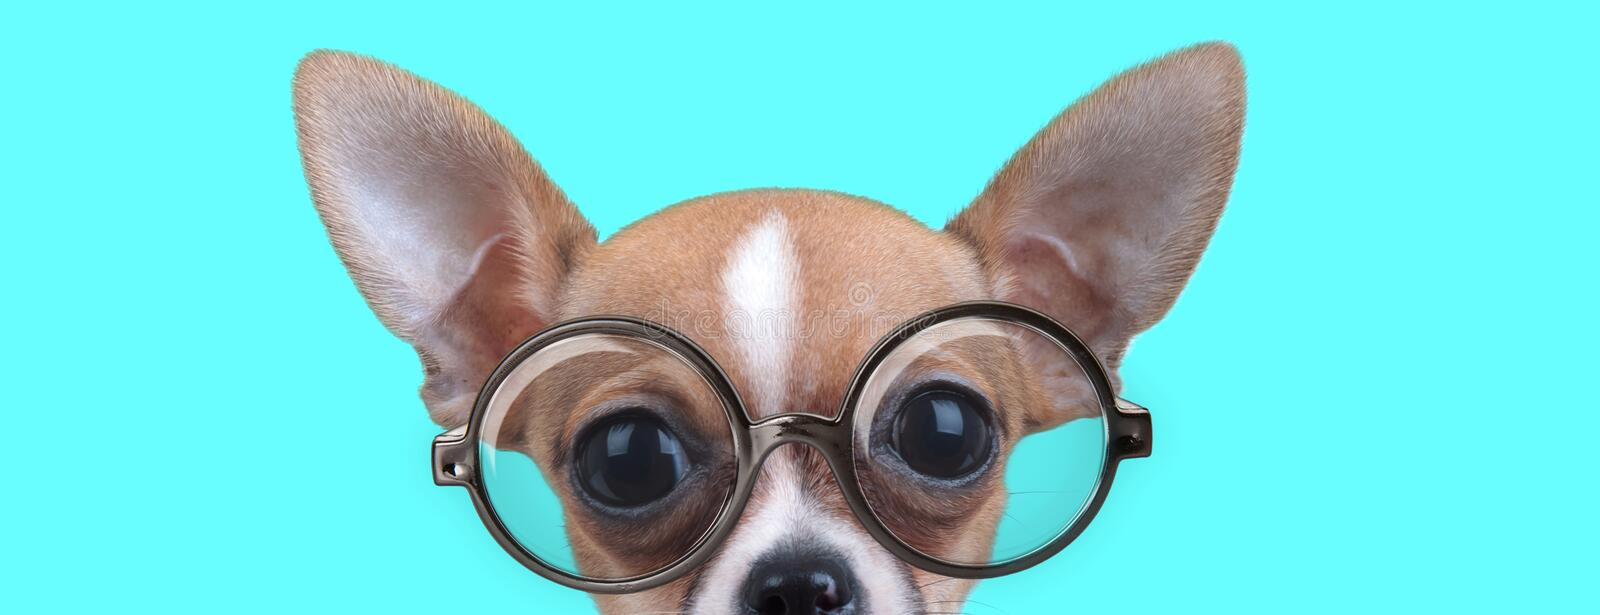 Cute nerdy Chiwawa dog with half of face hidden stock photo